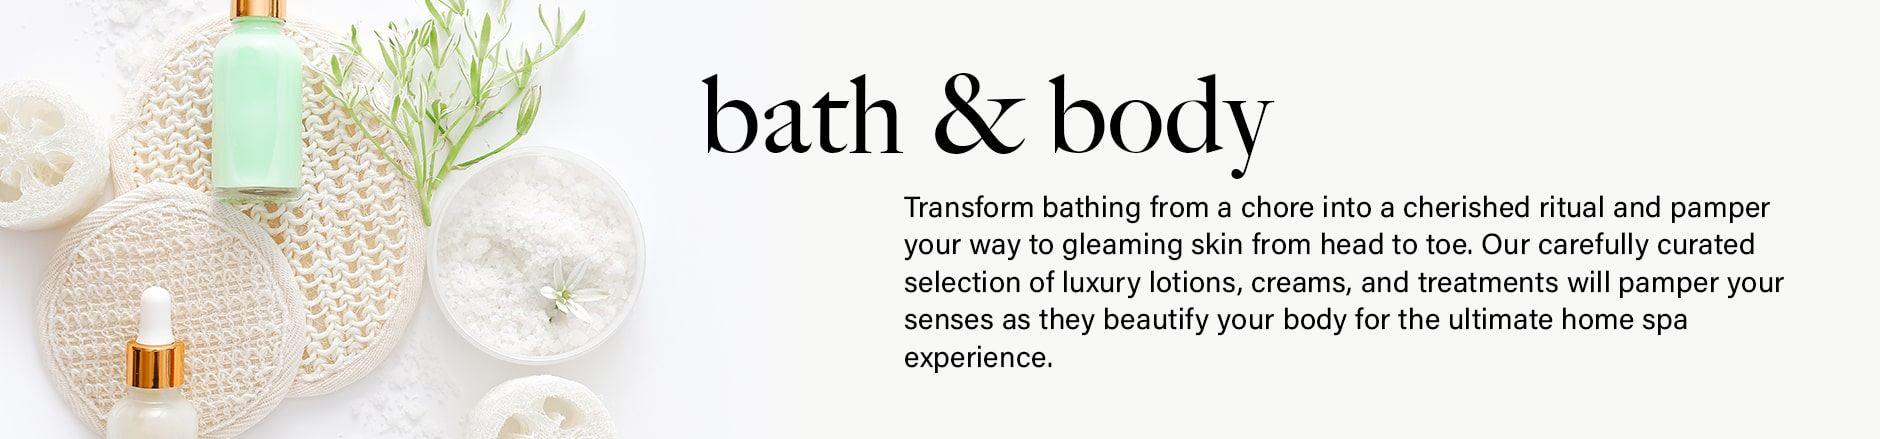 bath-and-body-collection-banner-image